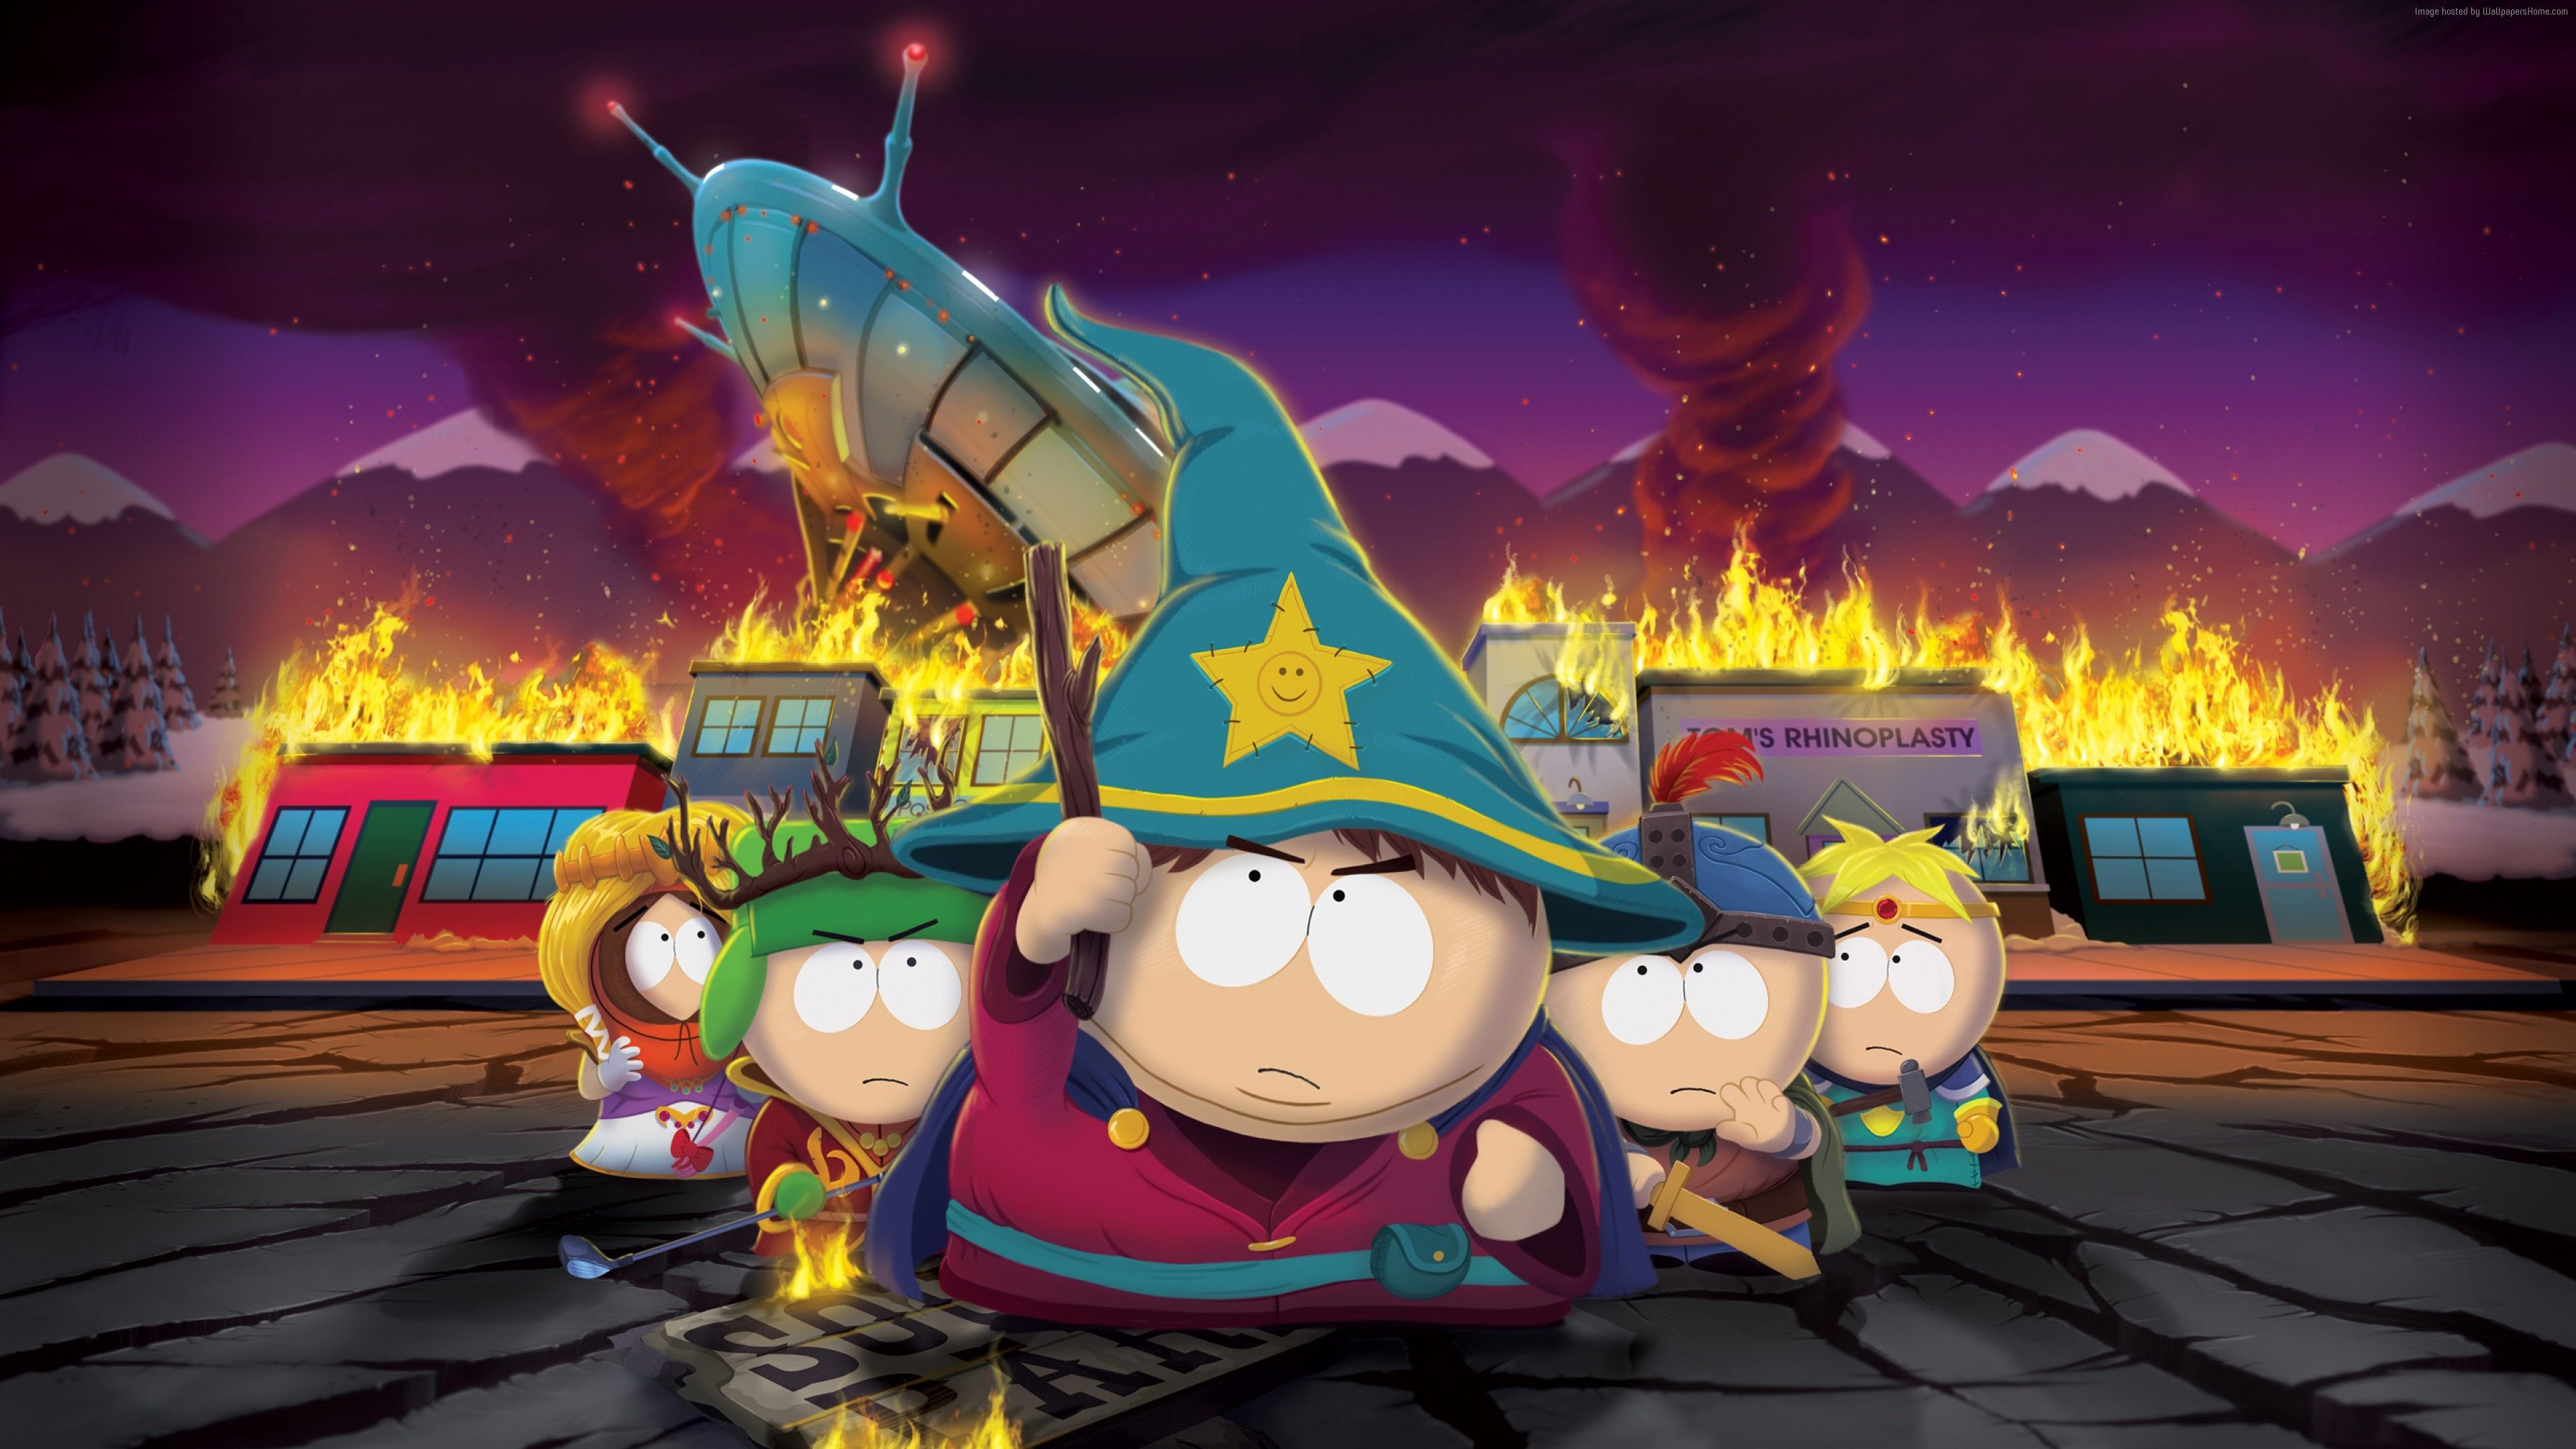 Desktophdwallpaper Org South Park South Park Poster South Park Cosplay